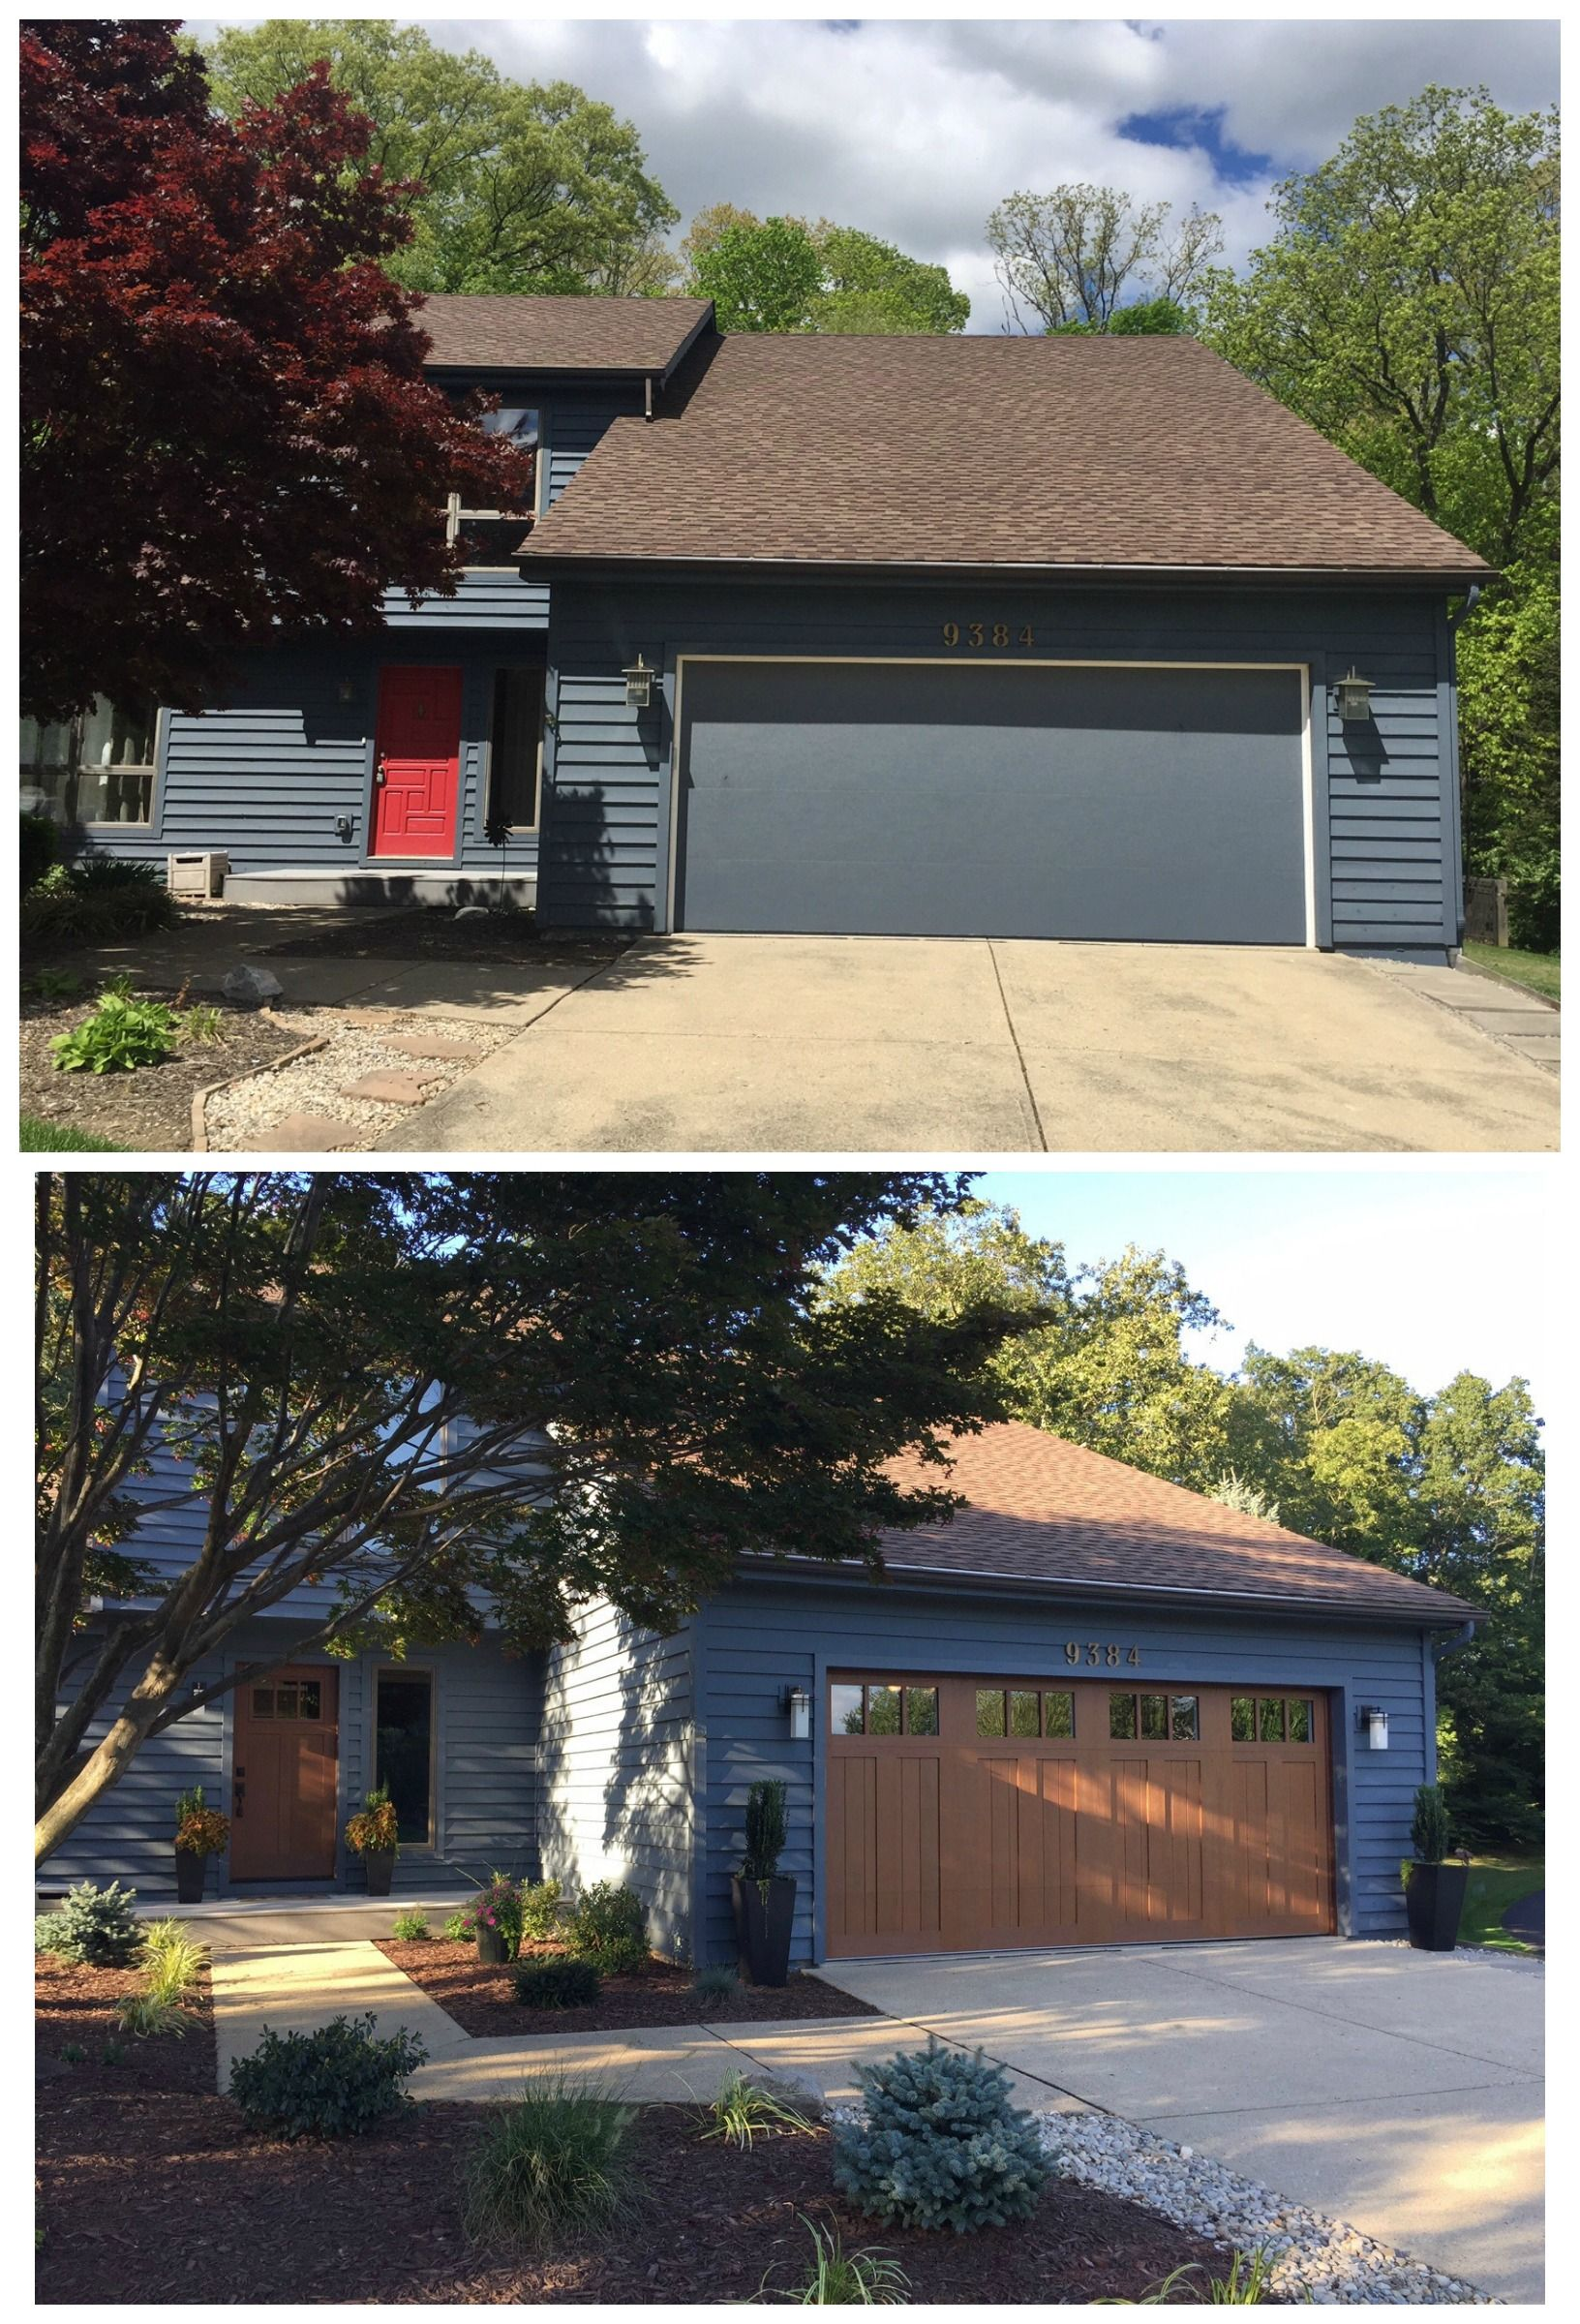 Classica northampton garage door white 9 x 8 no windows - Exterior Makeover Moving Toward A Modern Craftsman New Clopay Front Door And Faux Wood